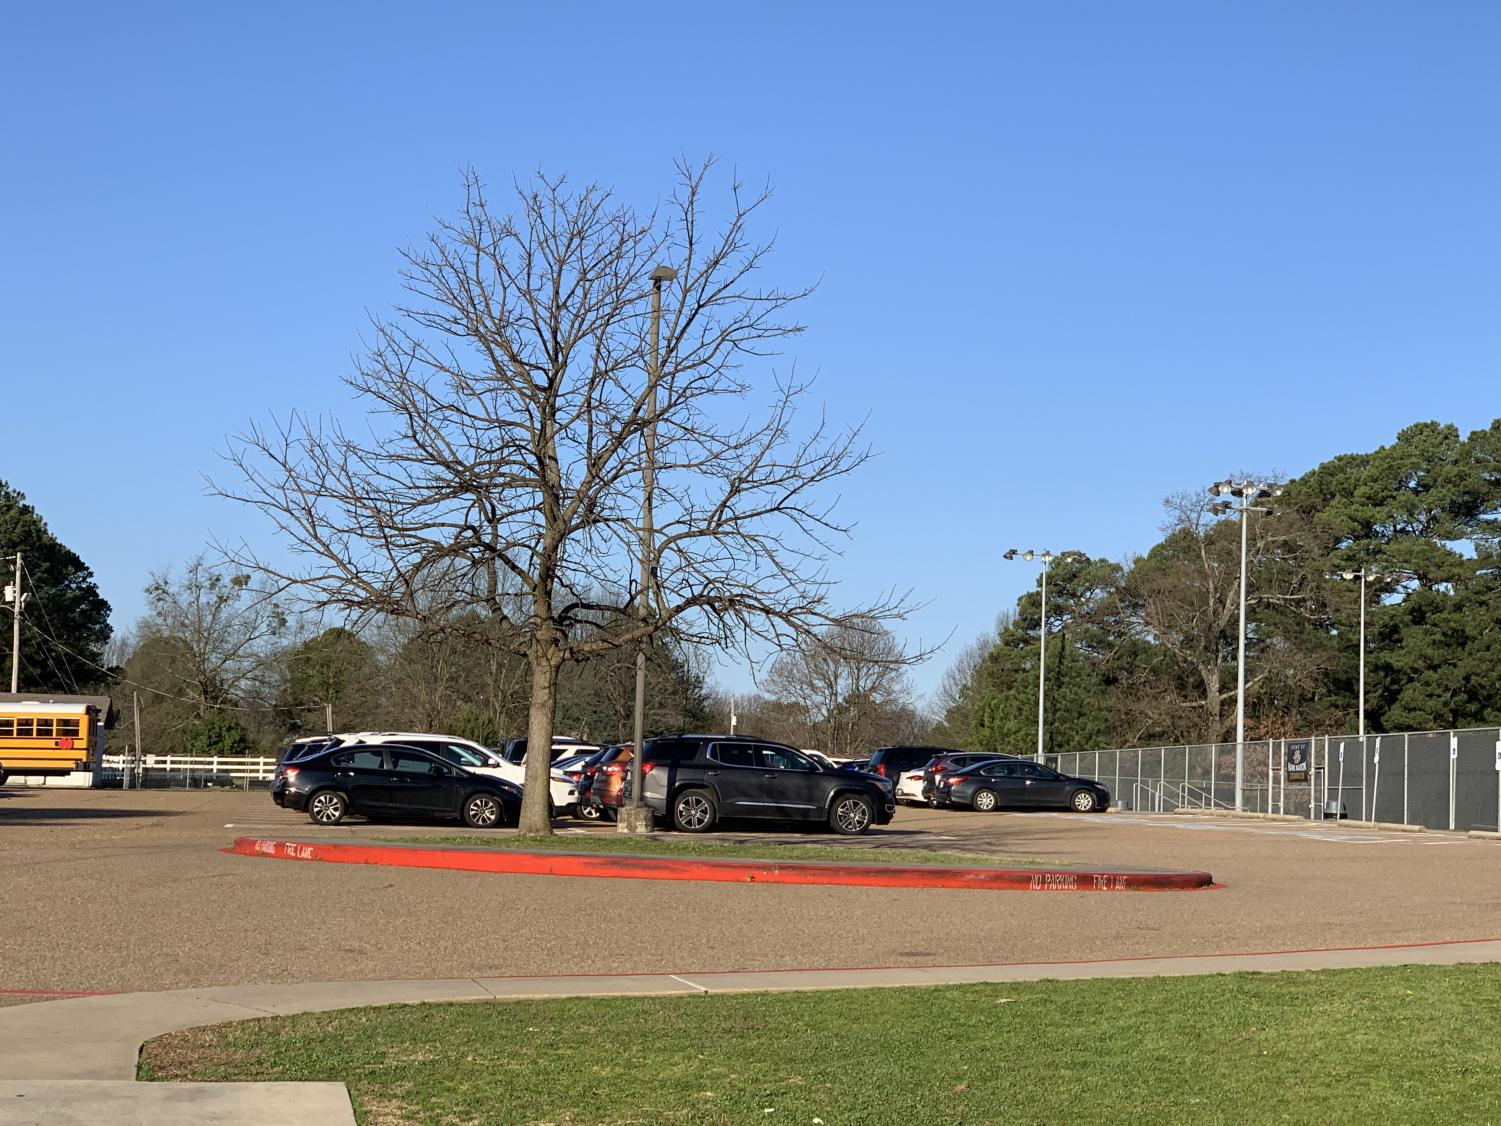 An image of the student parking lot, filled with cars now that the administration no longer allows students to park in the back lot.